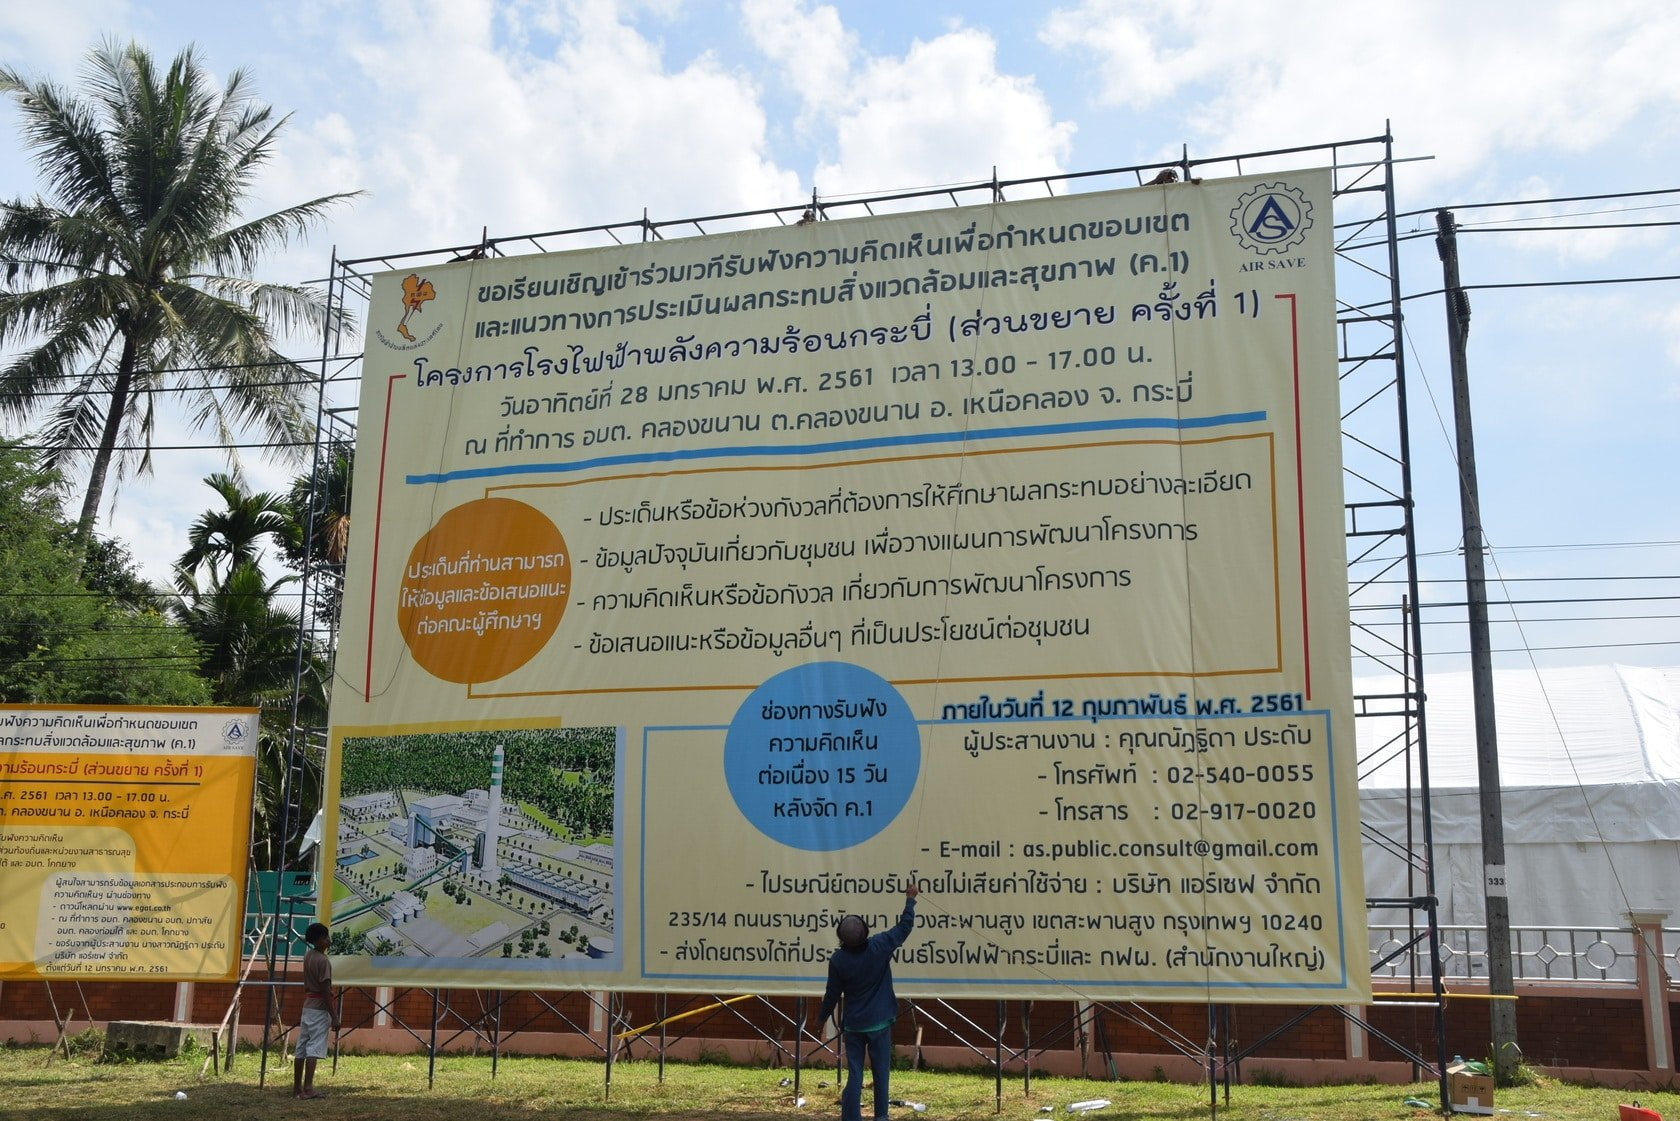 Coal plant protesters hold seminar in Krabi | Thaiger